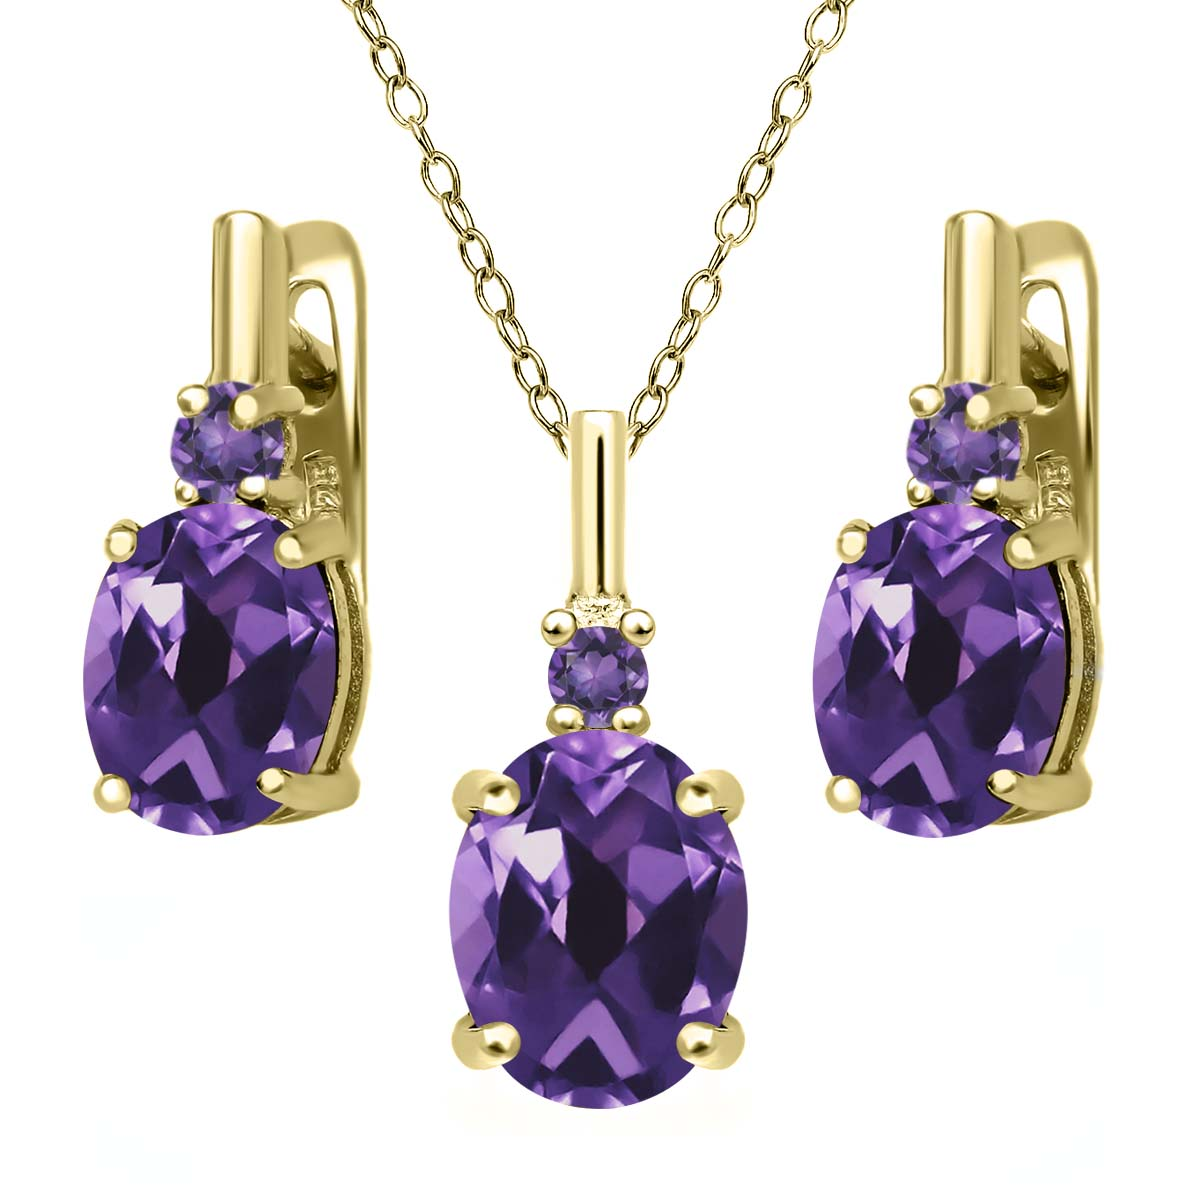 5.04 Ct Oval Purple Amethyst 18K Yellow Gold Plated Silver Pendant Earrings Set by